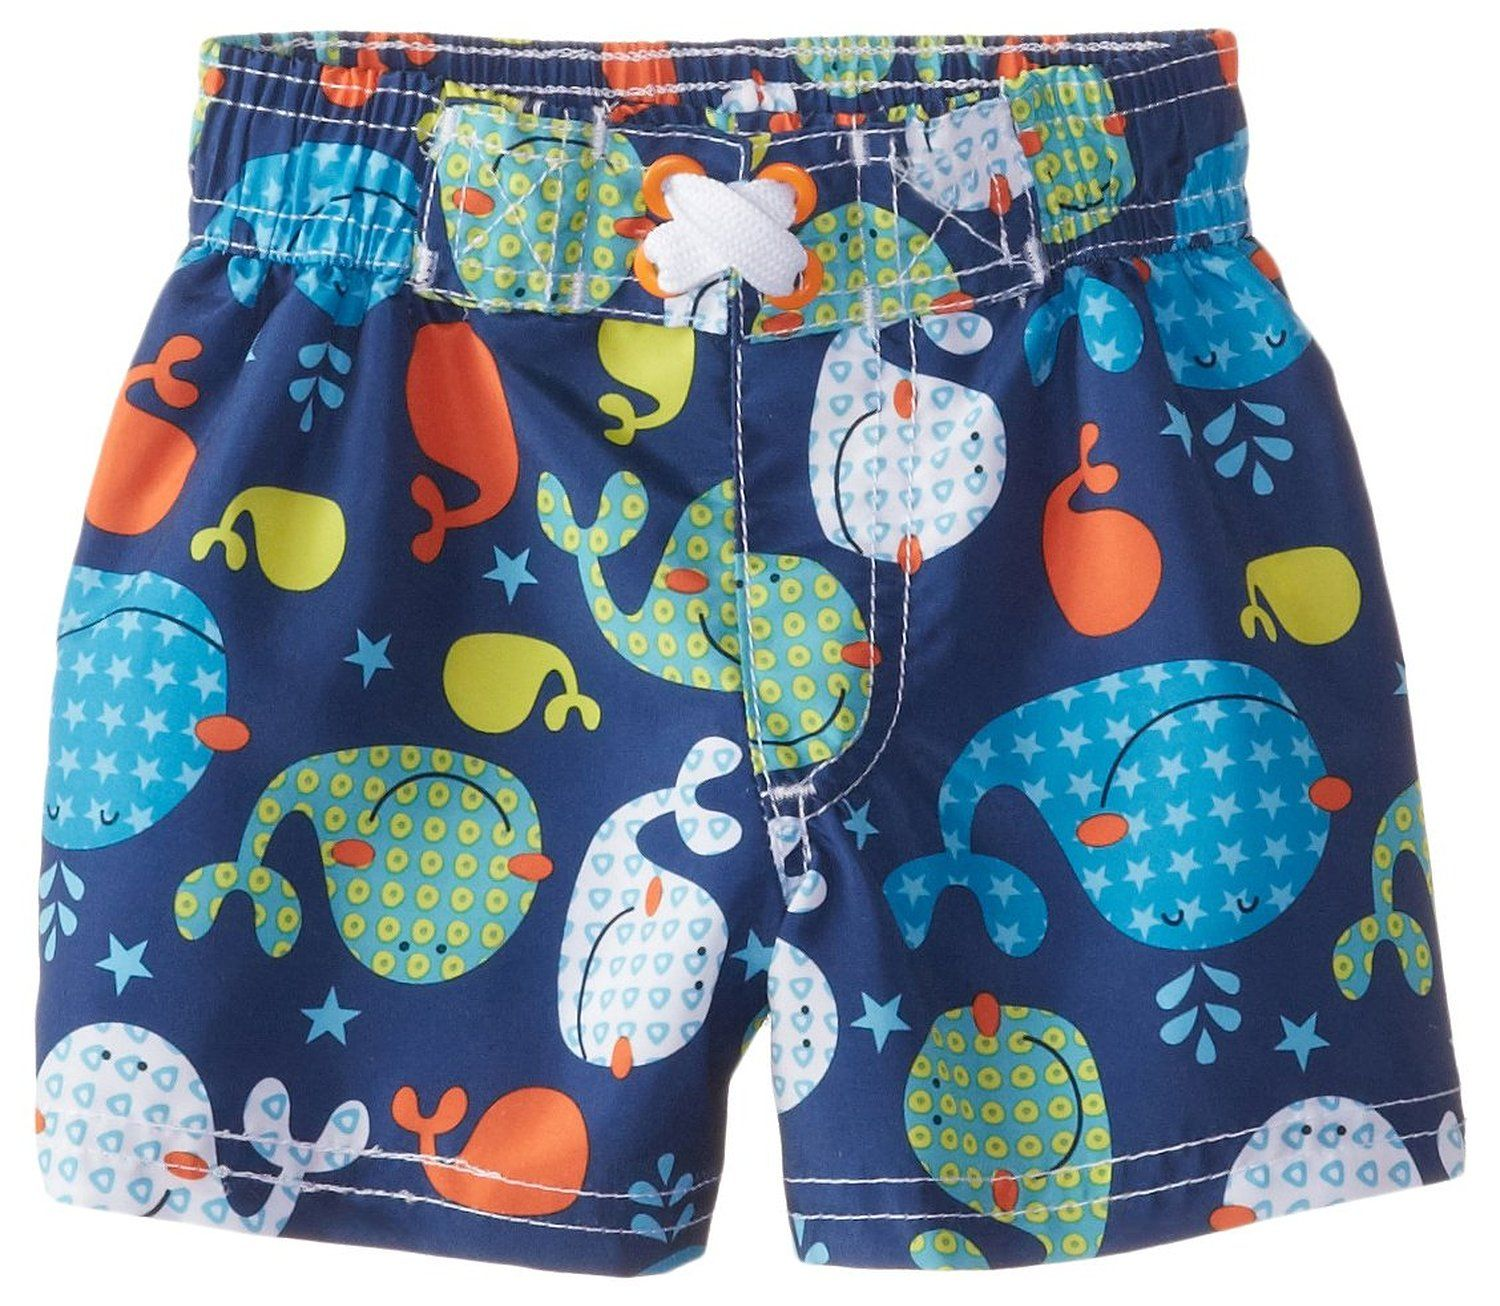 Sears Baby Clothes Whale Swim Trunks At Sears $11  Baby  Clothes  Pinterest  Swim